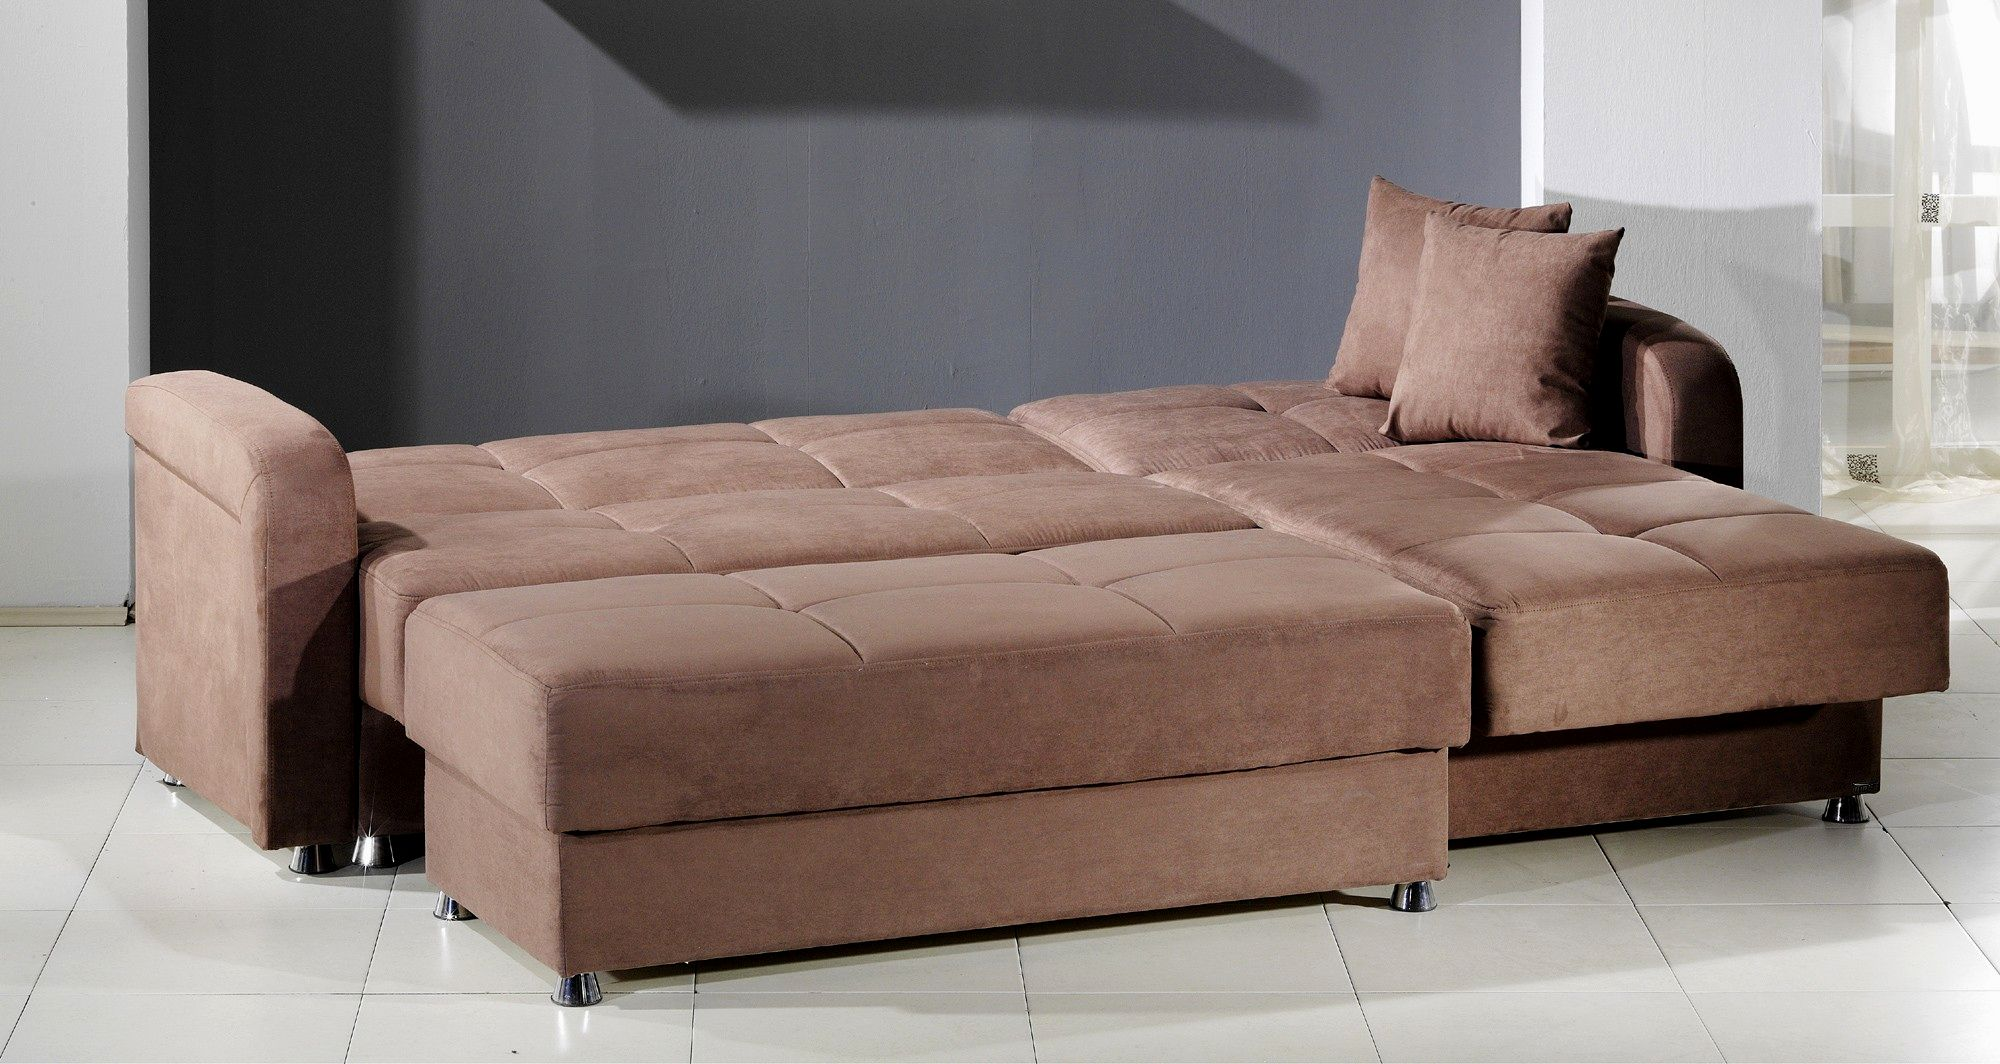 inspirational chaise lounge sofa covers image-Fresh Chaise Lounge sofa Covers Inspiration